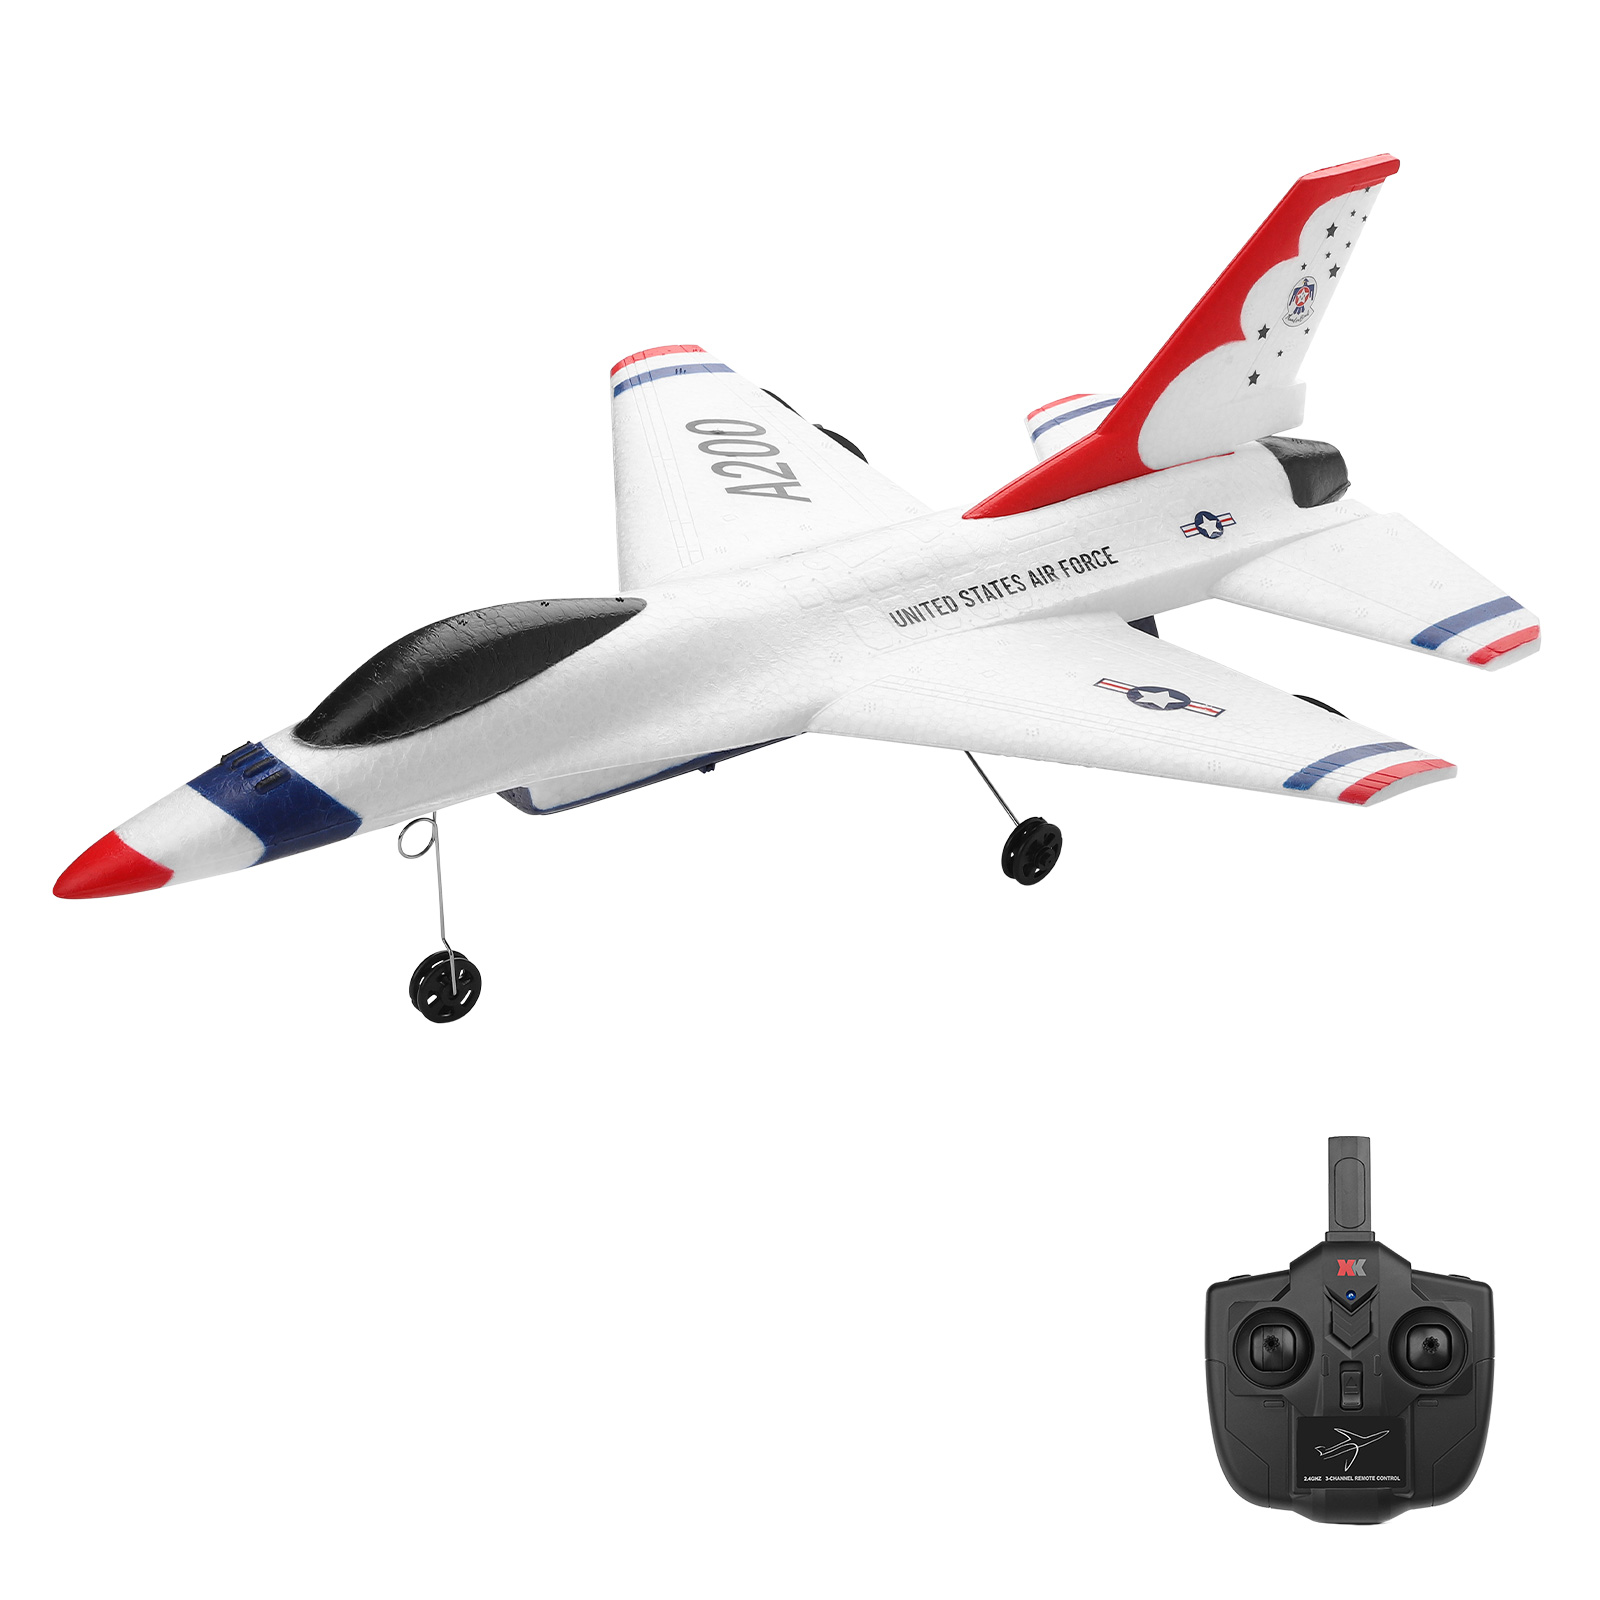 Xk  A200  F-16b Rc Airplane Drone  2.4g  2ch 12mins  Flight Time Fixed-wing Epp Electric Model  Building  Rtf  Outdoor Toys For Children a200